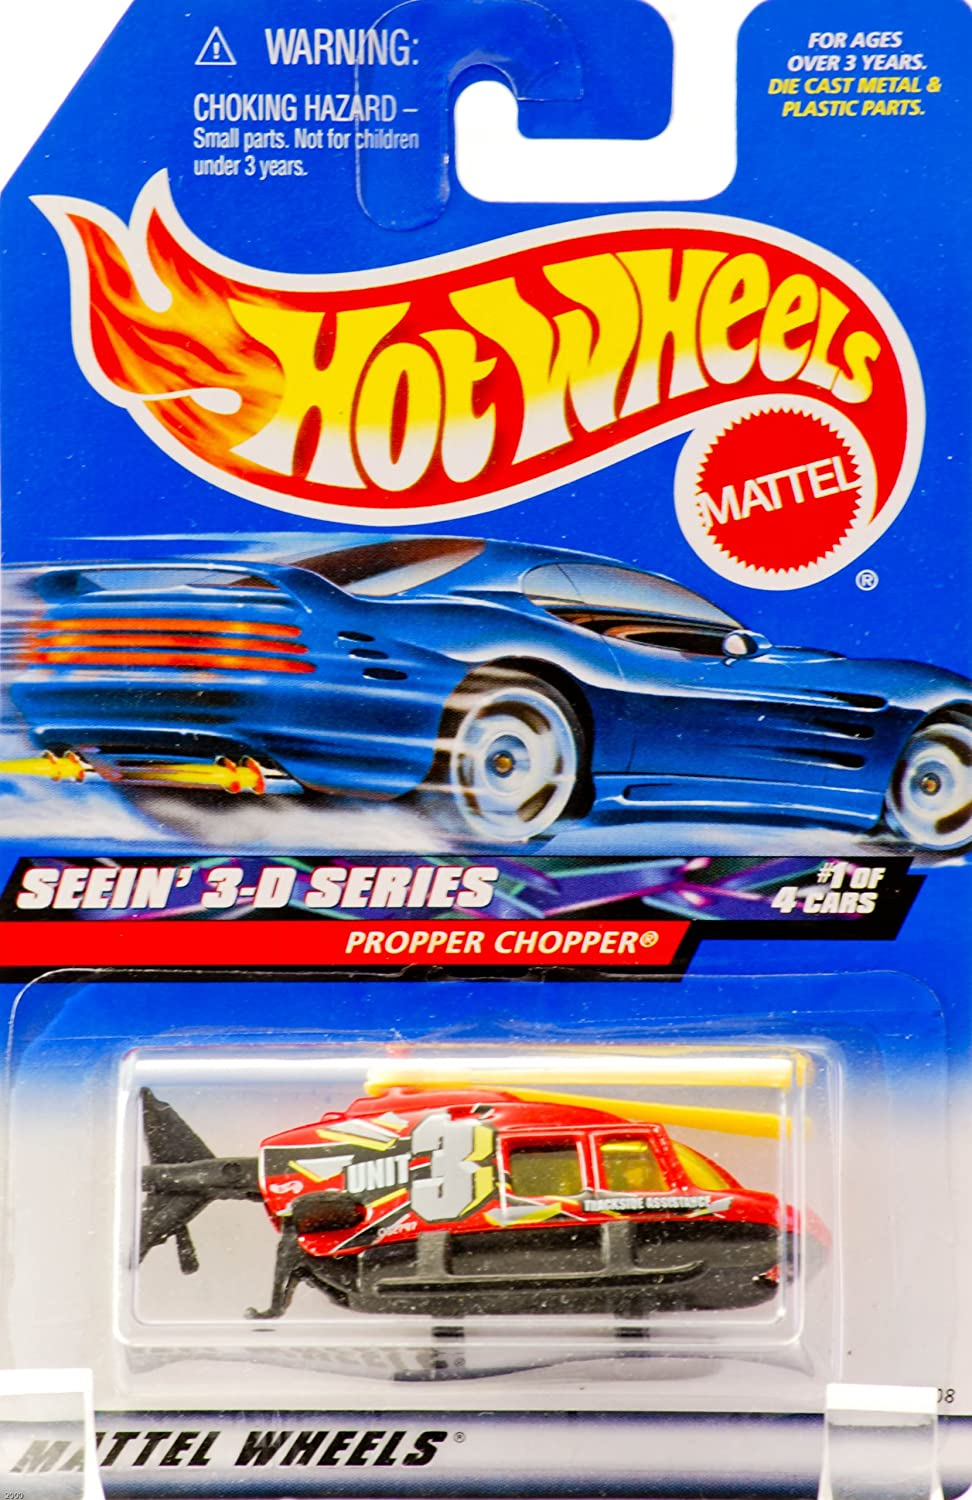 Propper Chopper Yellow Blades 2000 Out of Production Unit 3 : Trackside Assistance Graphics Hot Wheels Collector #009 Rare Collectible 26008 Red /& Black Seein 3-D Series #1 of 4 New Mattel Limited Edition Yellow Tinted Windows